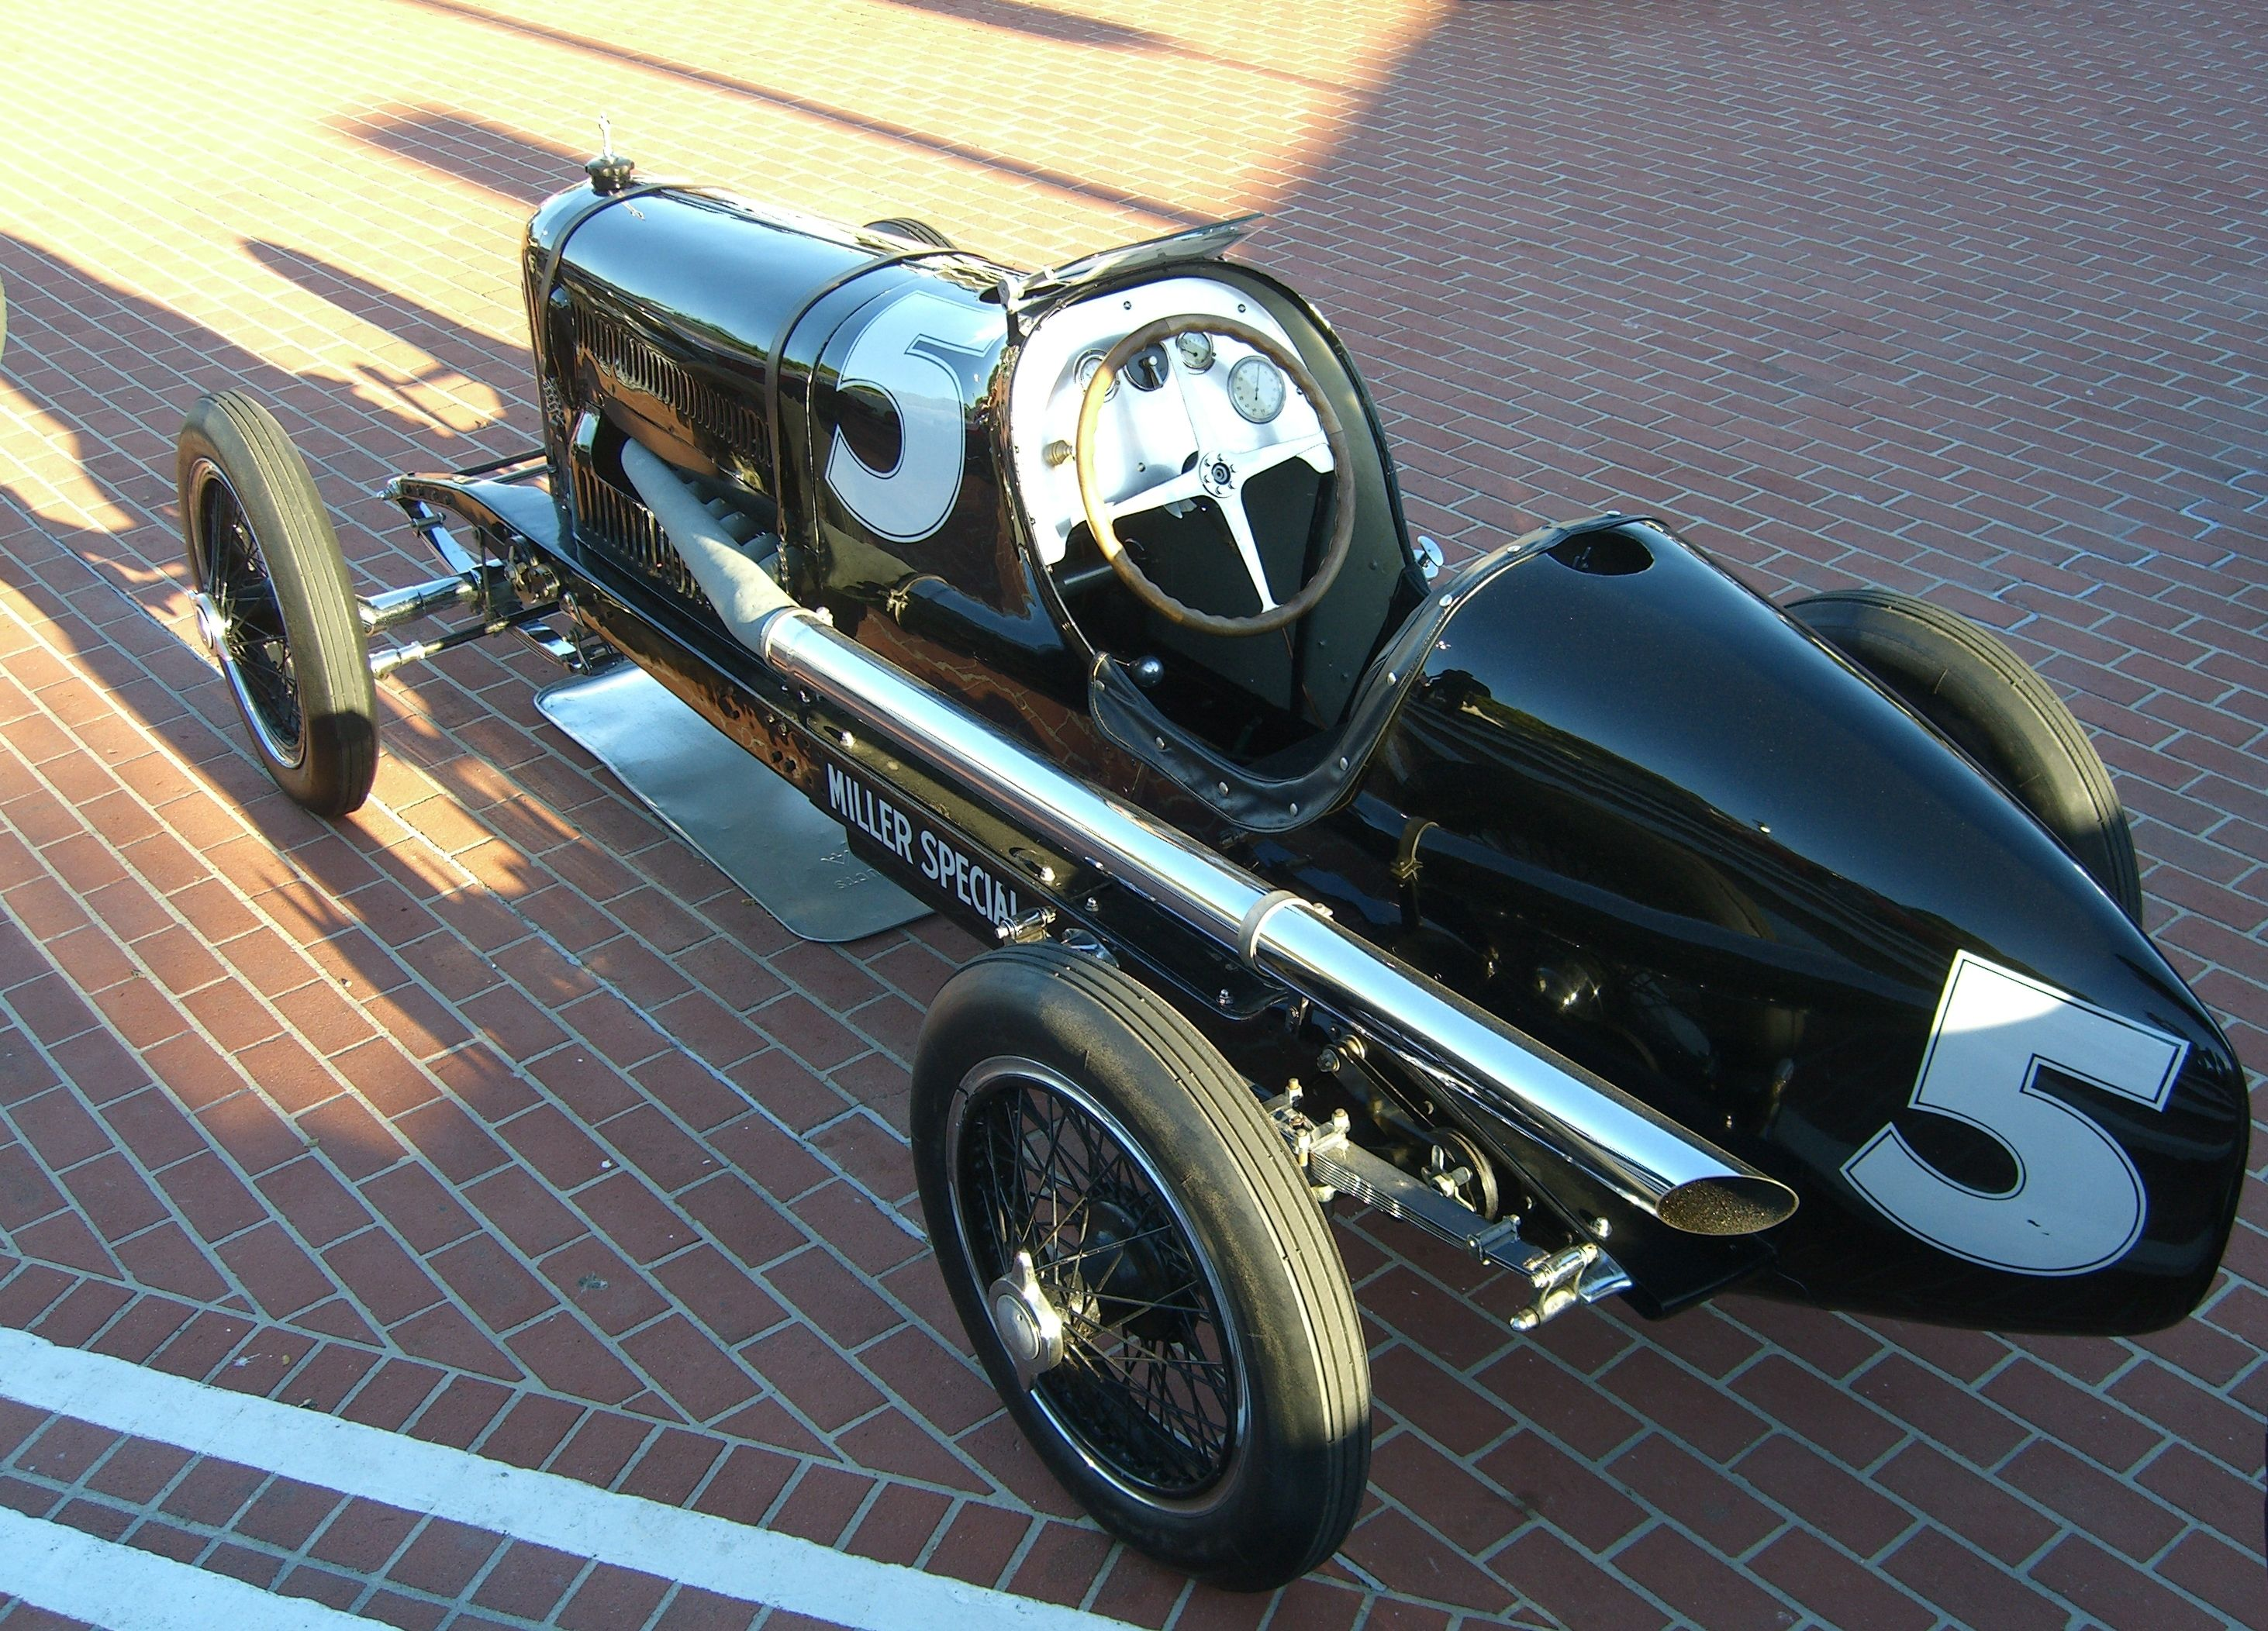 1920s race cars - Google Search | "|2925|2104|?|0aff37c90ade1bad5e724db0cfe2a896|False|UNLIKELY|0.3258773982524872